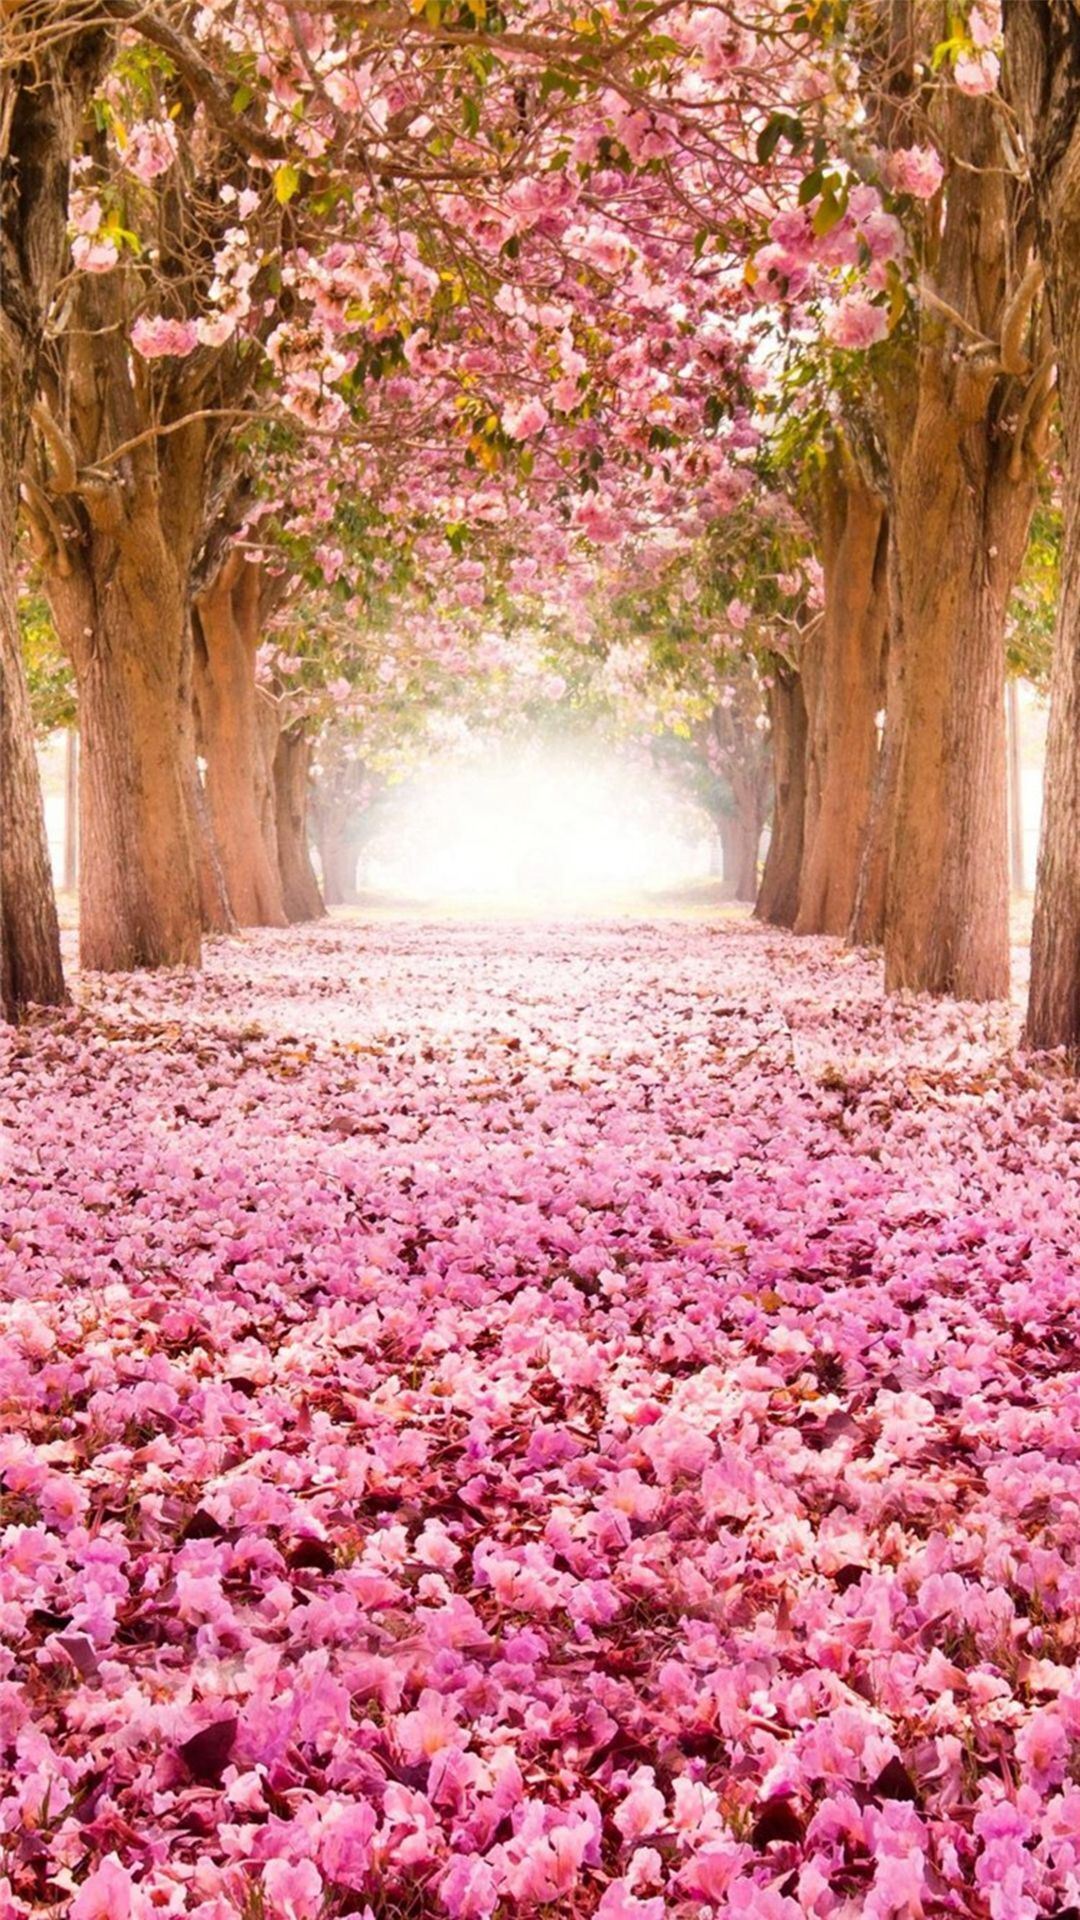 dreamy fantasy bloomy petal path iphone 6 plus wallpaper